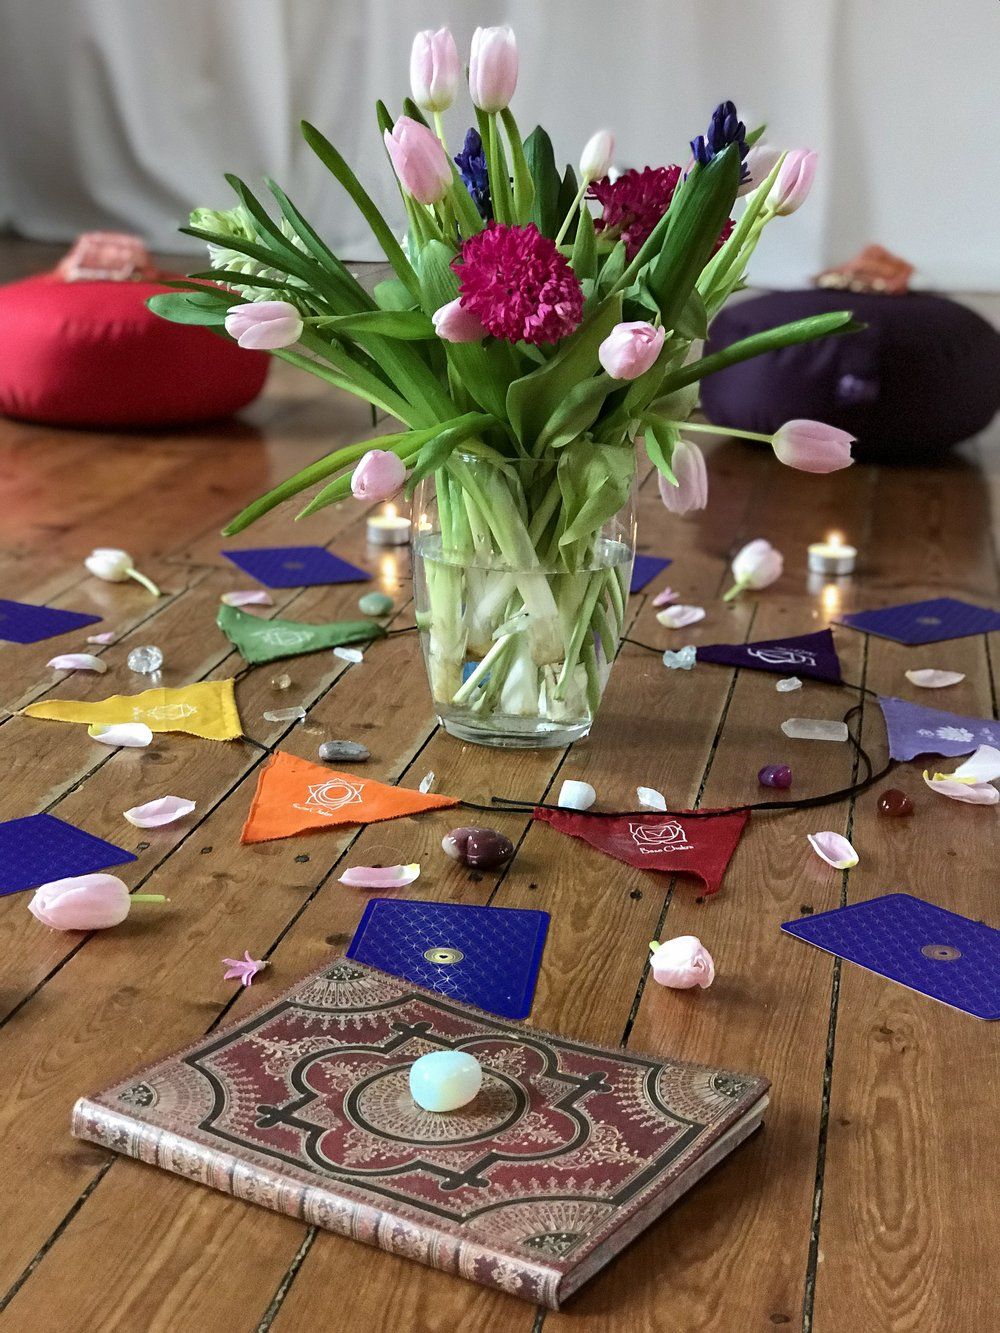 Our beautiful altar at our Bloom into Spring Intuitive Art & Yoga Workshop.